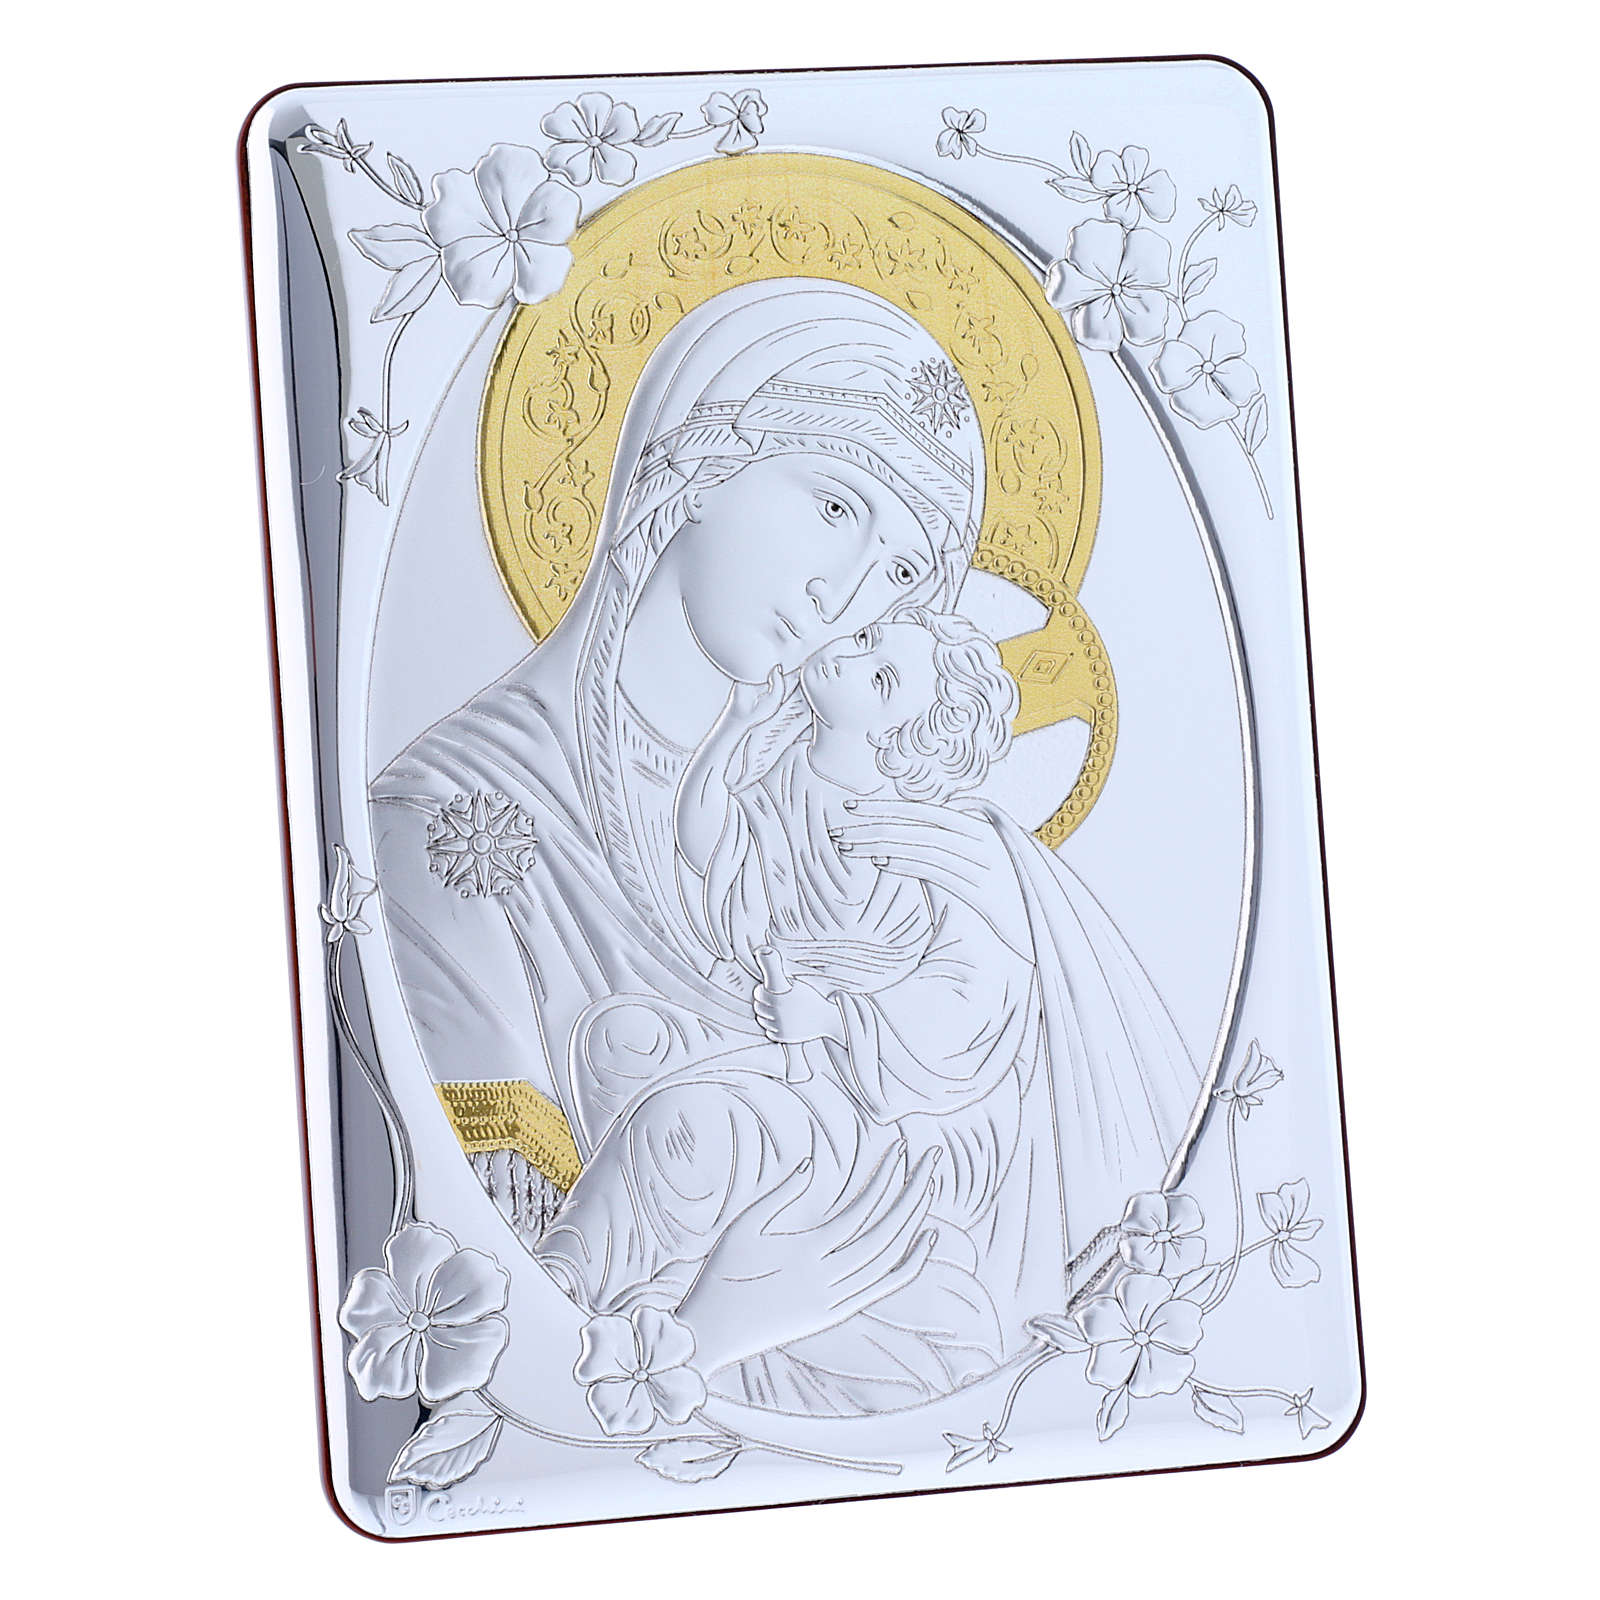 Our Lady of Vladimir painting finished in gold, made of laminboard with refined wooden back 21,6X16,3 cm 4